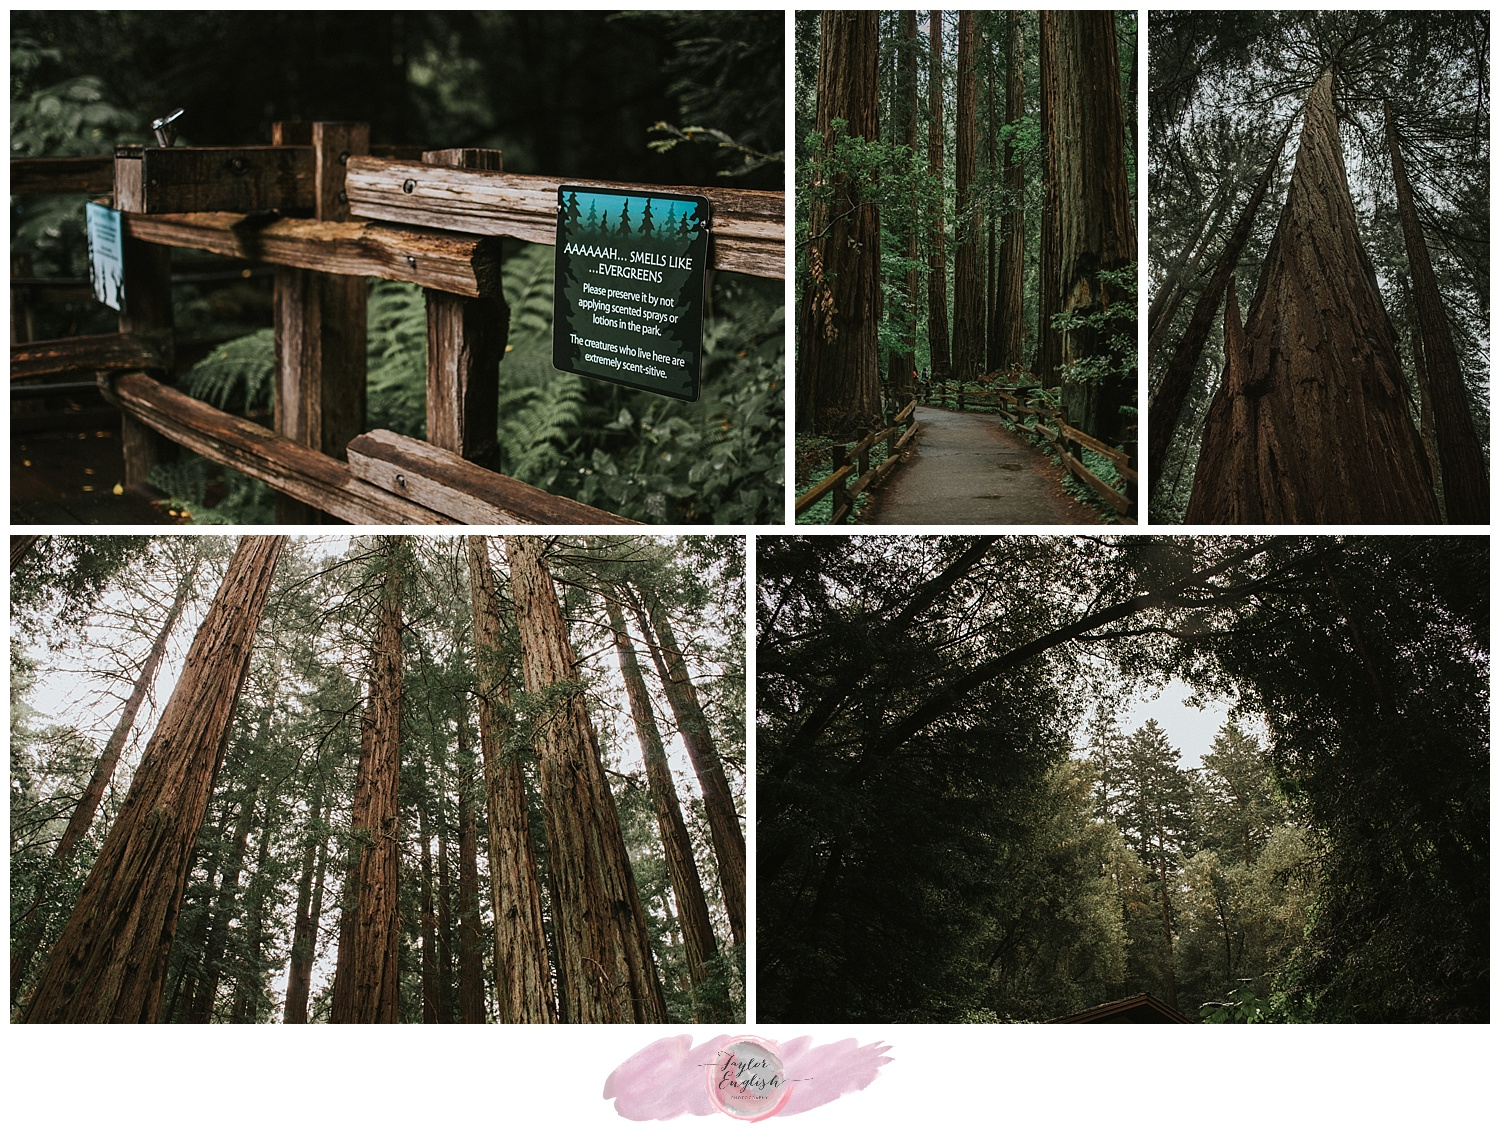 Muir Woods National Monument and the overwhelming beauty of the legendary California Redwoods.